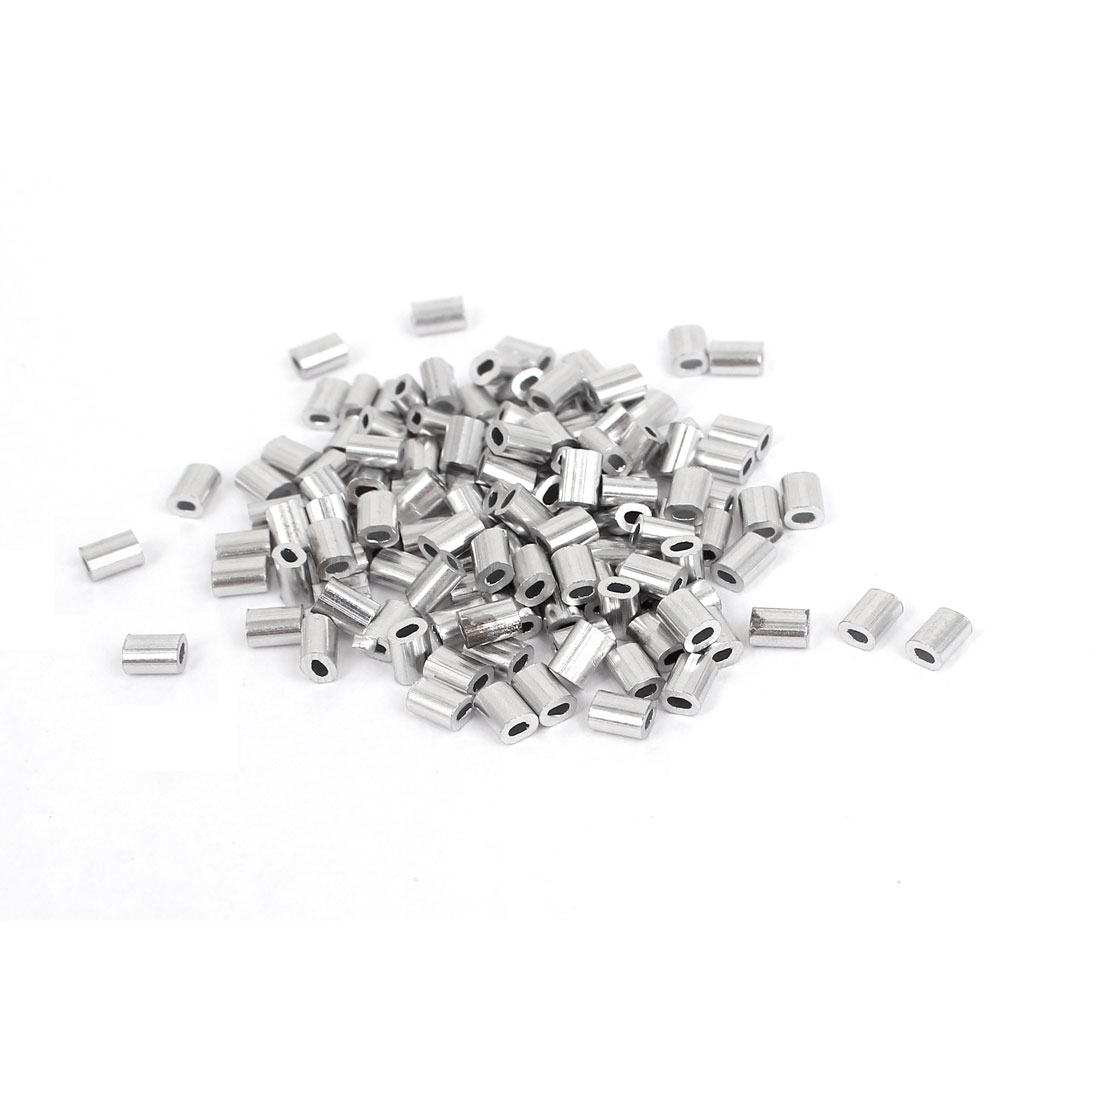 UXCELL Hot Sale 100Pcs/PACK 1mm Wire Rope Aluminum Sleeves Clip Fittings Loop Sleeve Cable Crimps Ropes Ferrules Silver Tone